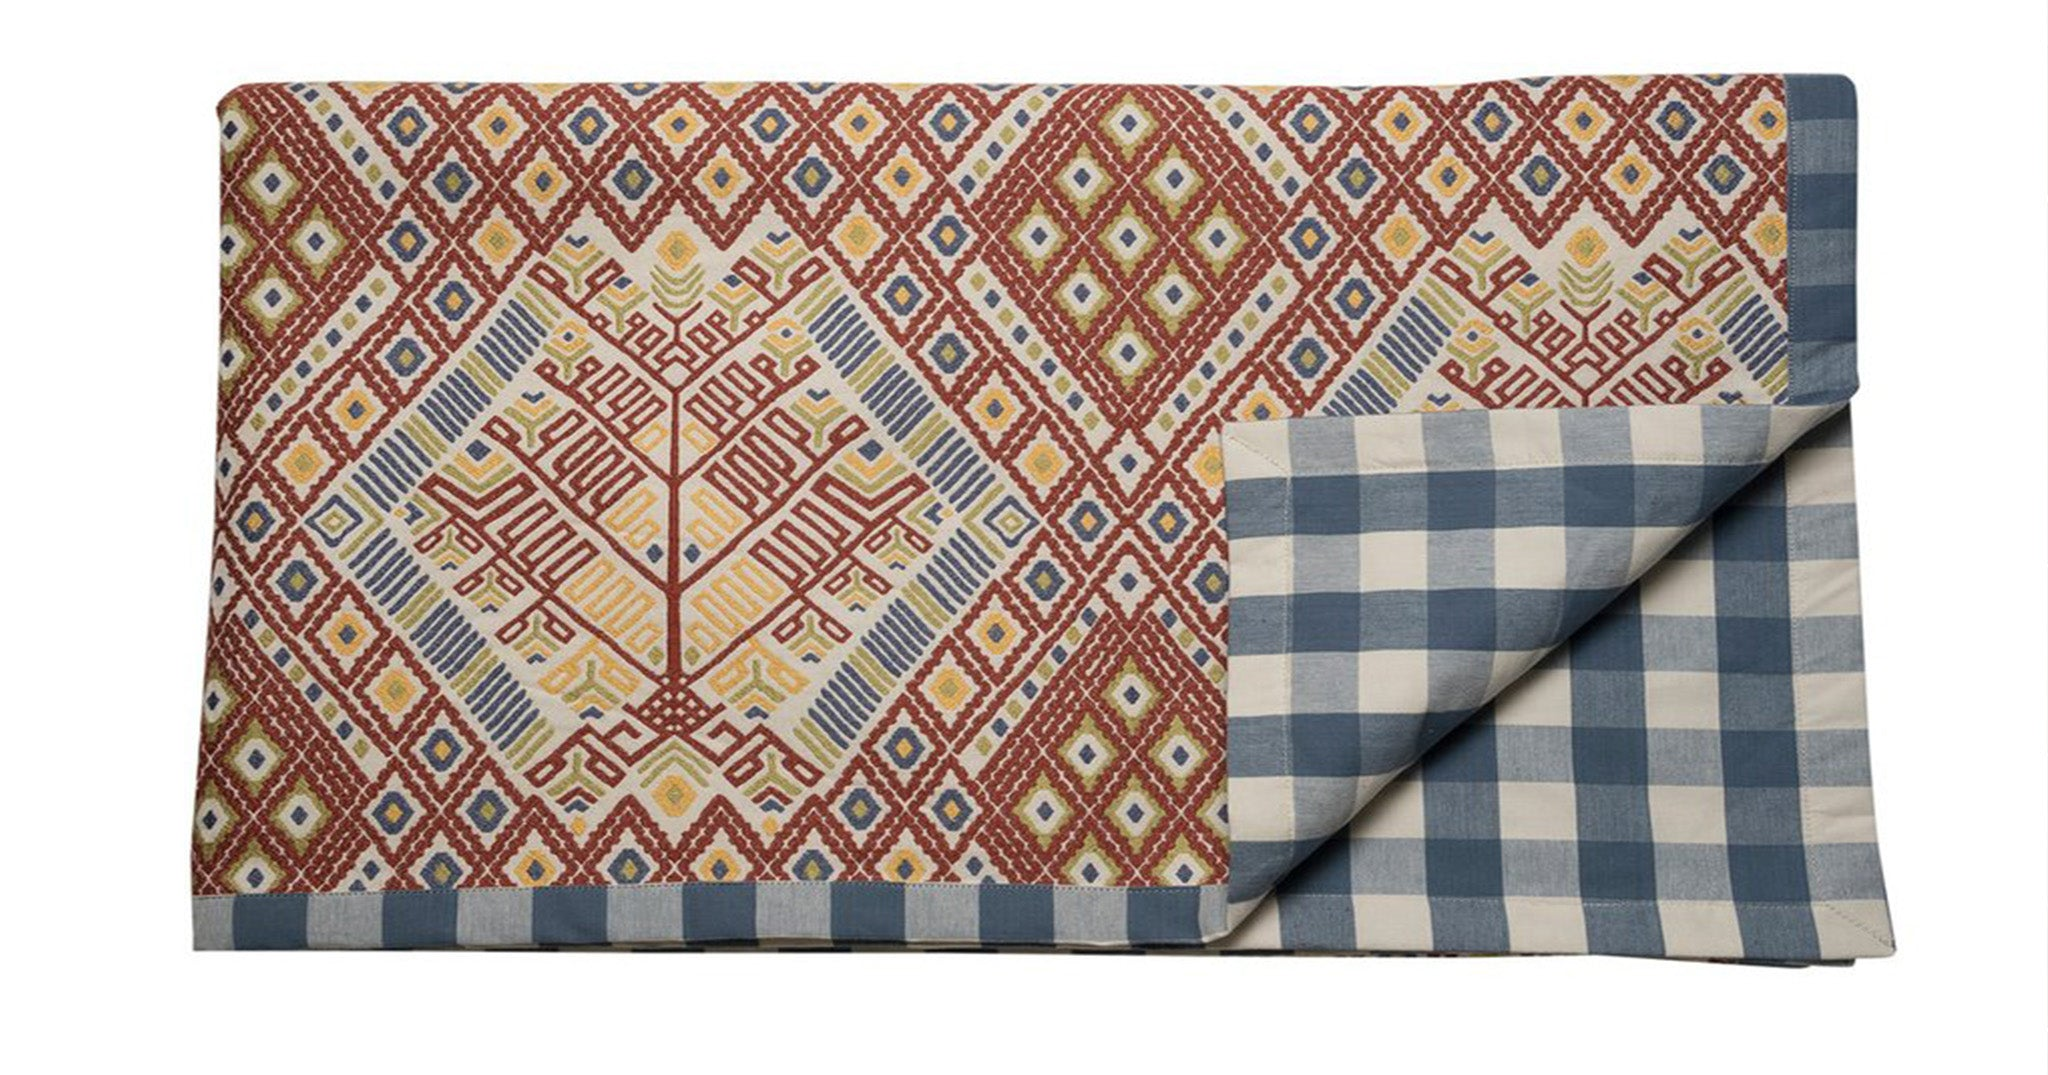 Wicklewood Tree of Life Throw will add intererest and colour to any bed or sofa